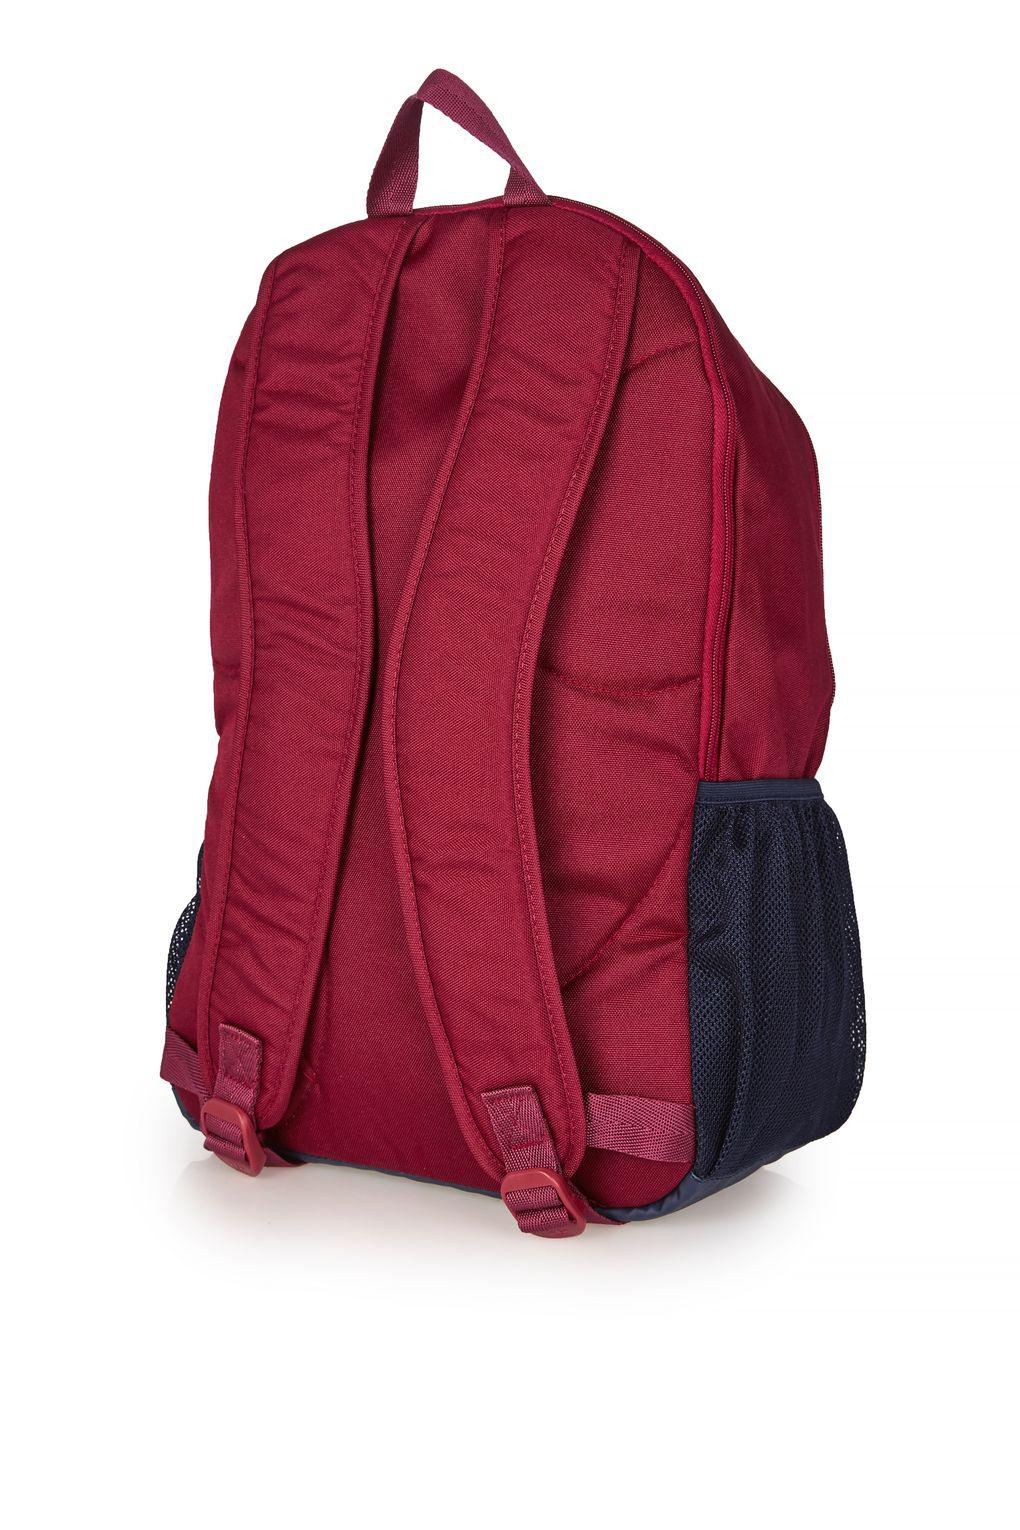 150e35f446 adidas Colour Block Backpack By Adidas Originals - Lyst